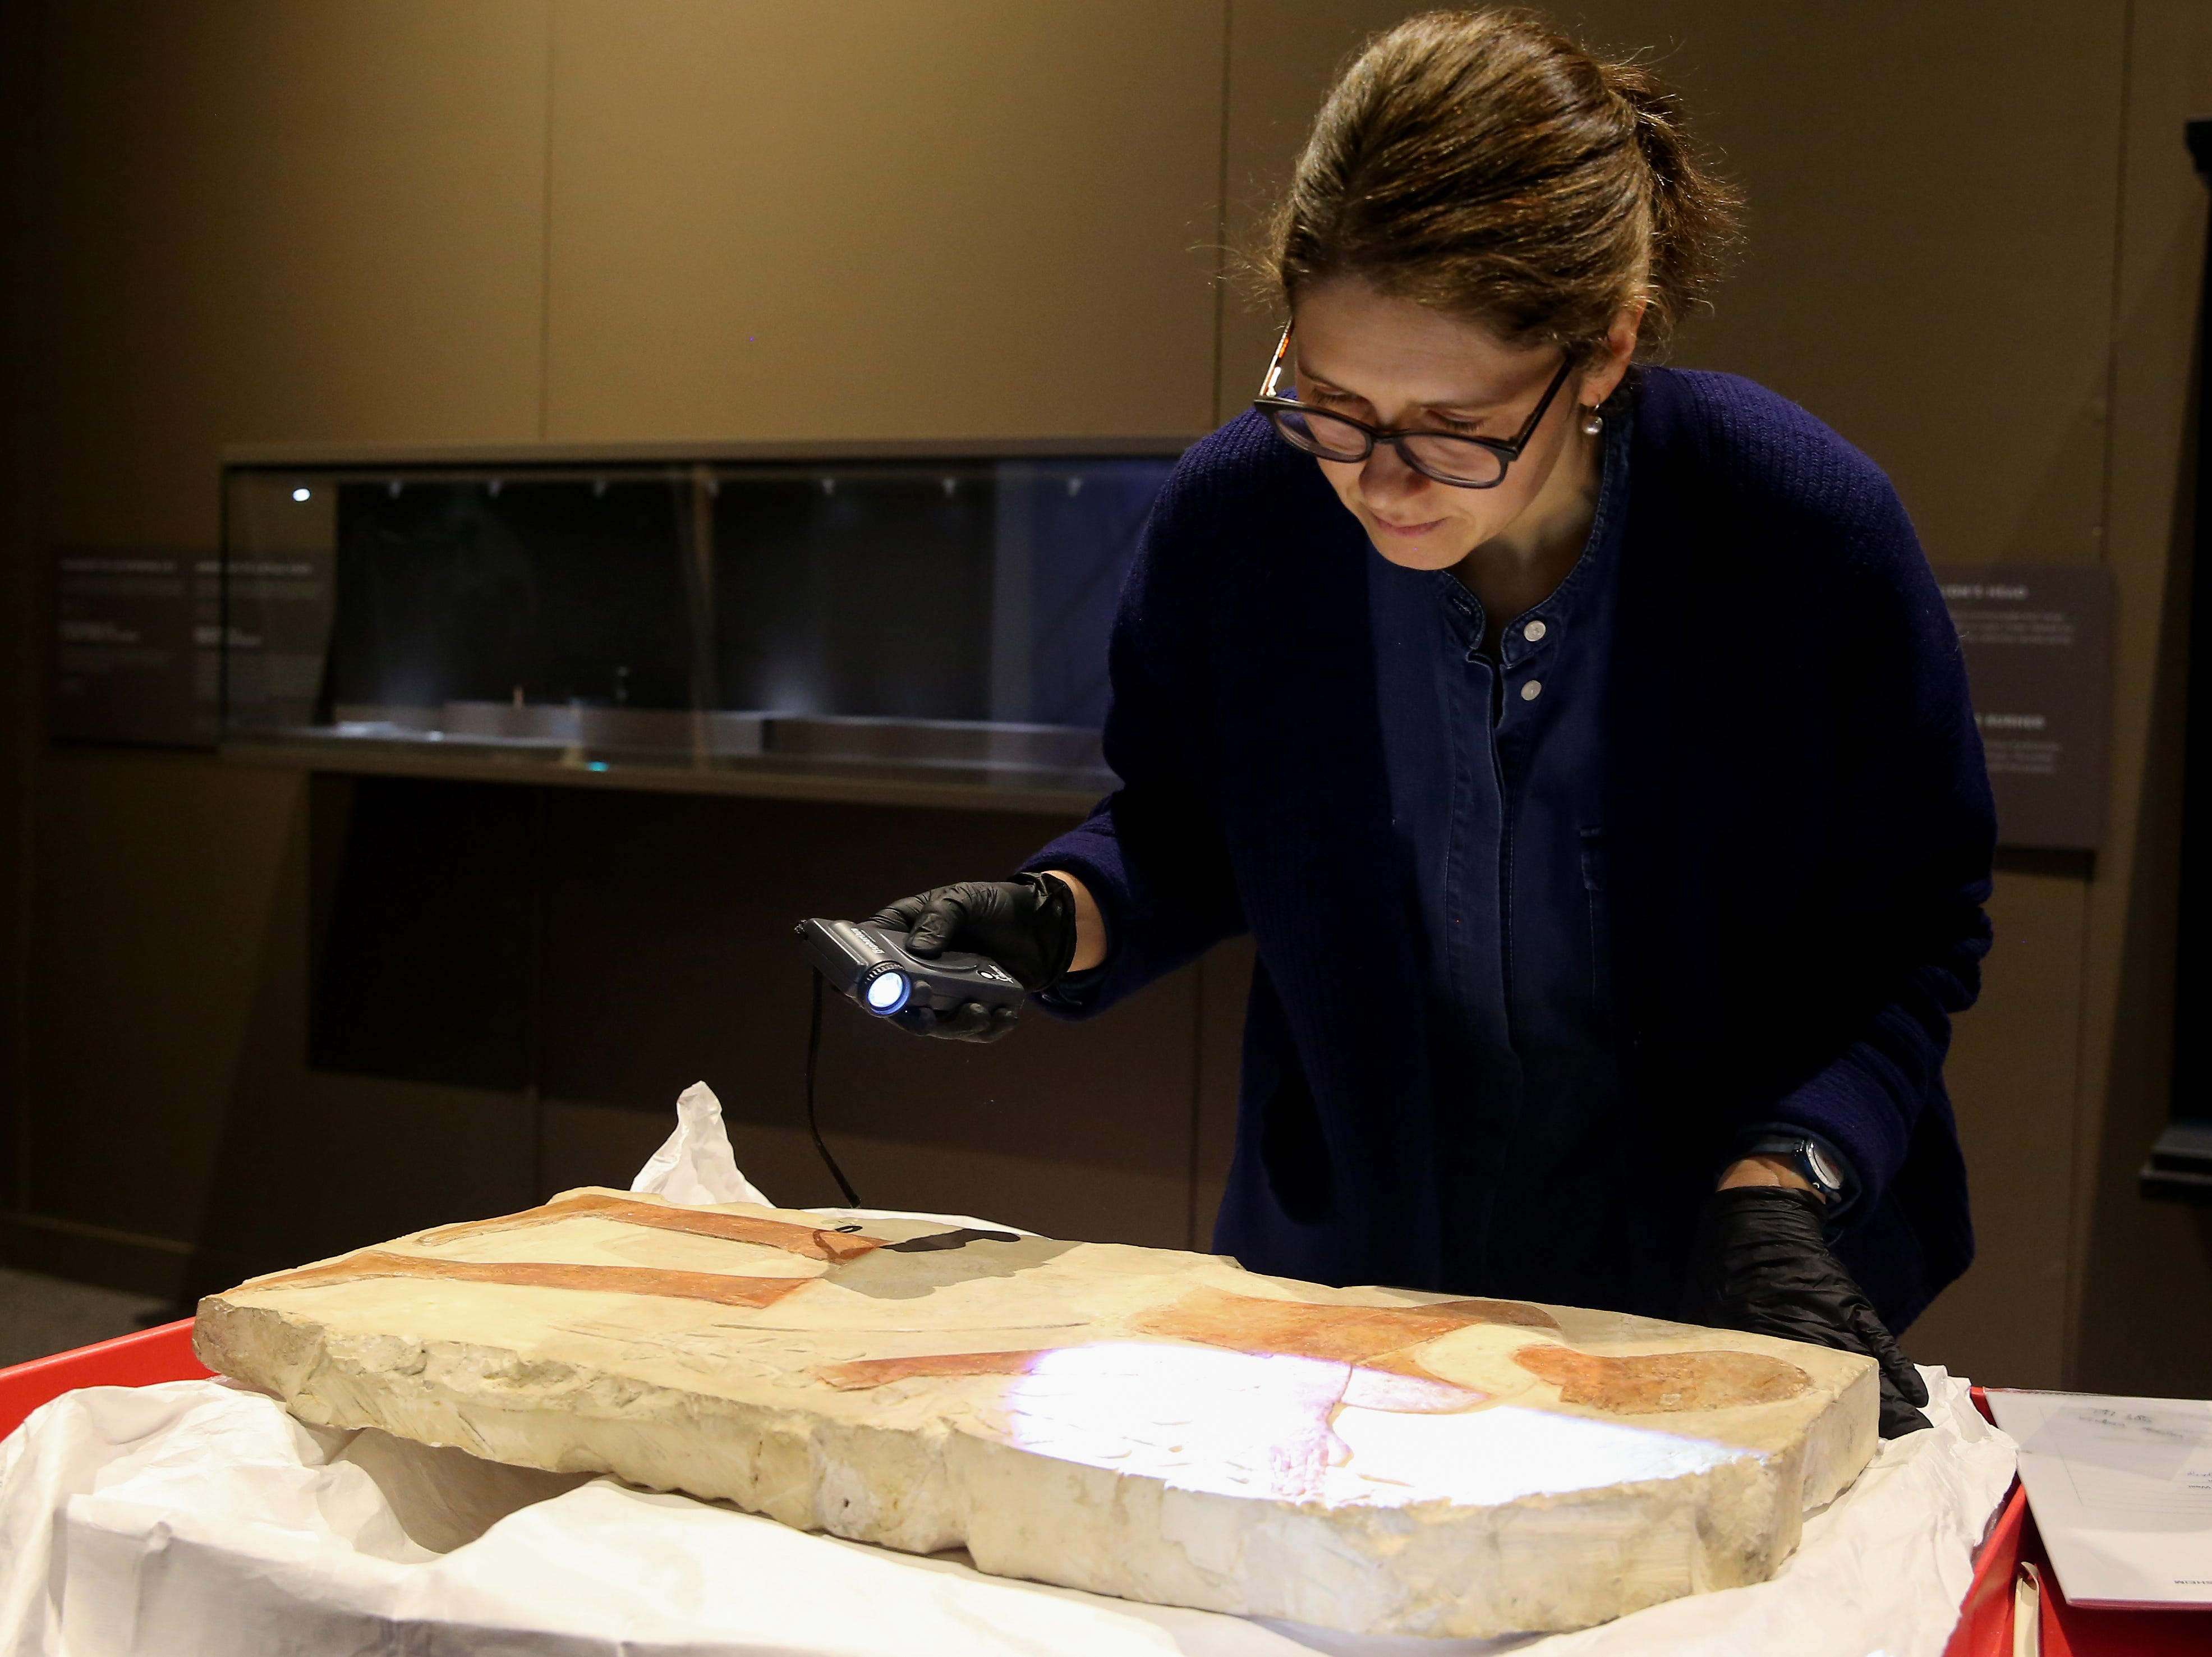 Conservator Claudia Schindler inspects an ancient Egyptian relief, featuring a man with a festive bouquet as it is uncrated for display, Thursday, Feb. 7, 2019, at Cincinnati Museum Center in Cincinnati. The relief is made of limestone and is about 3,500 years old.